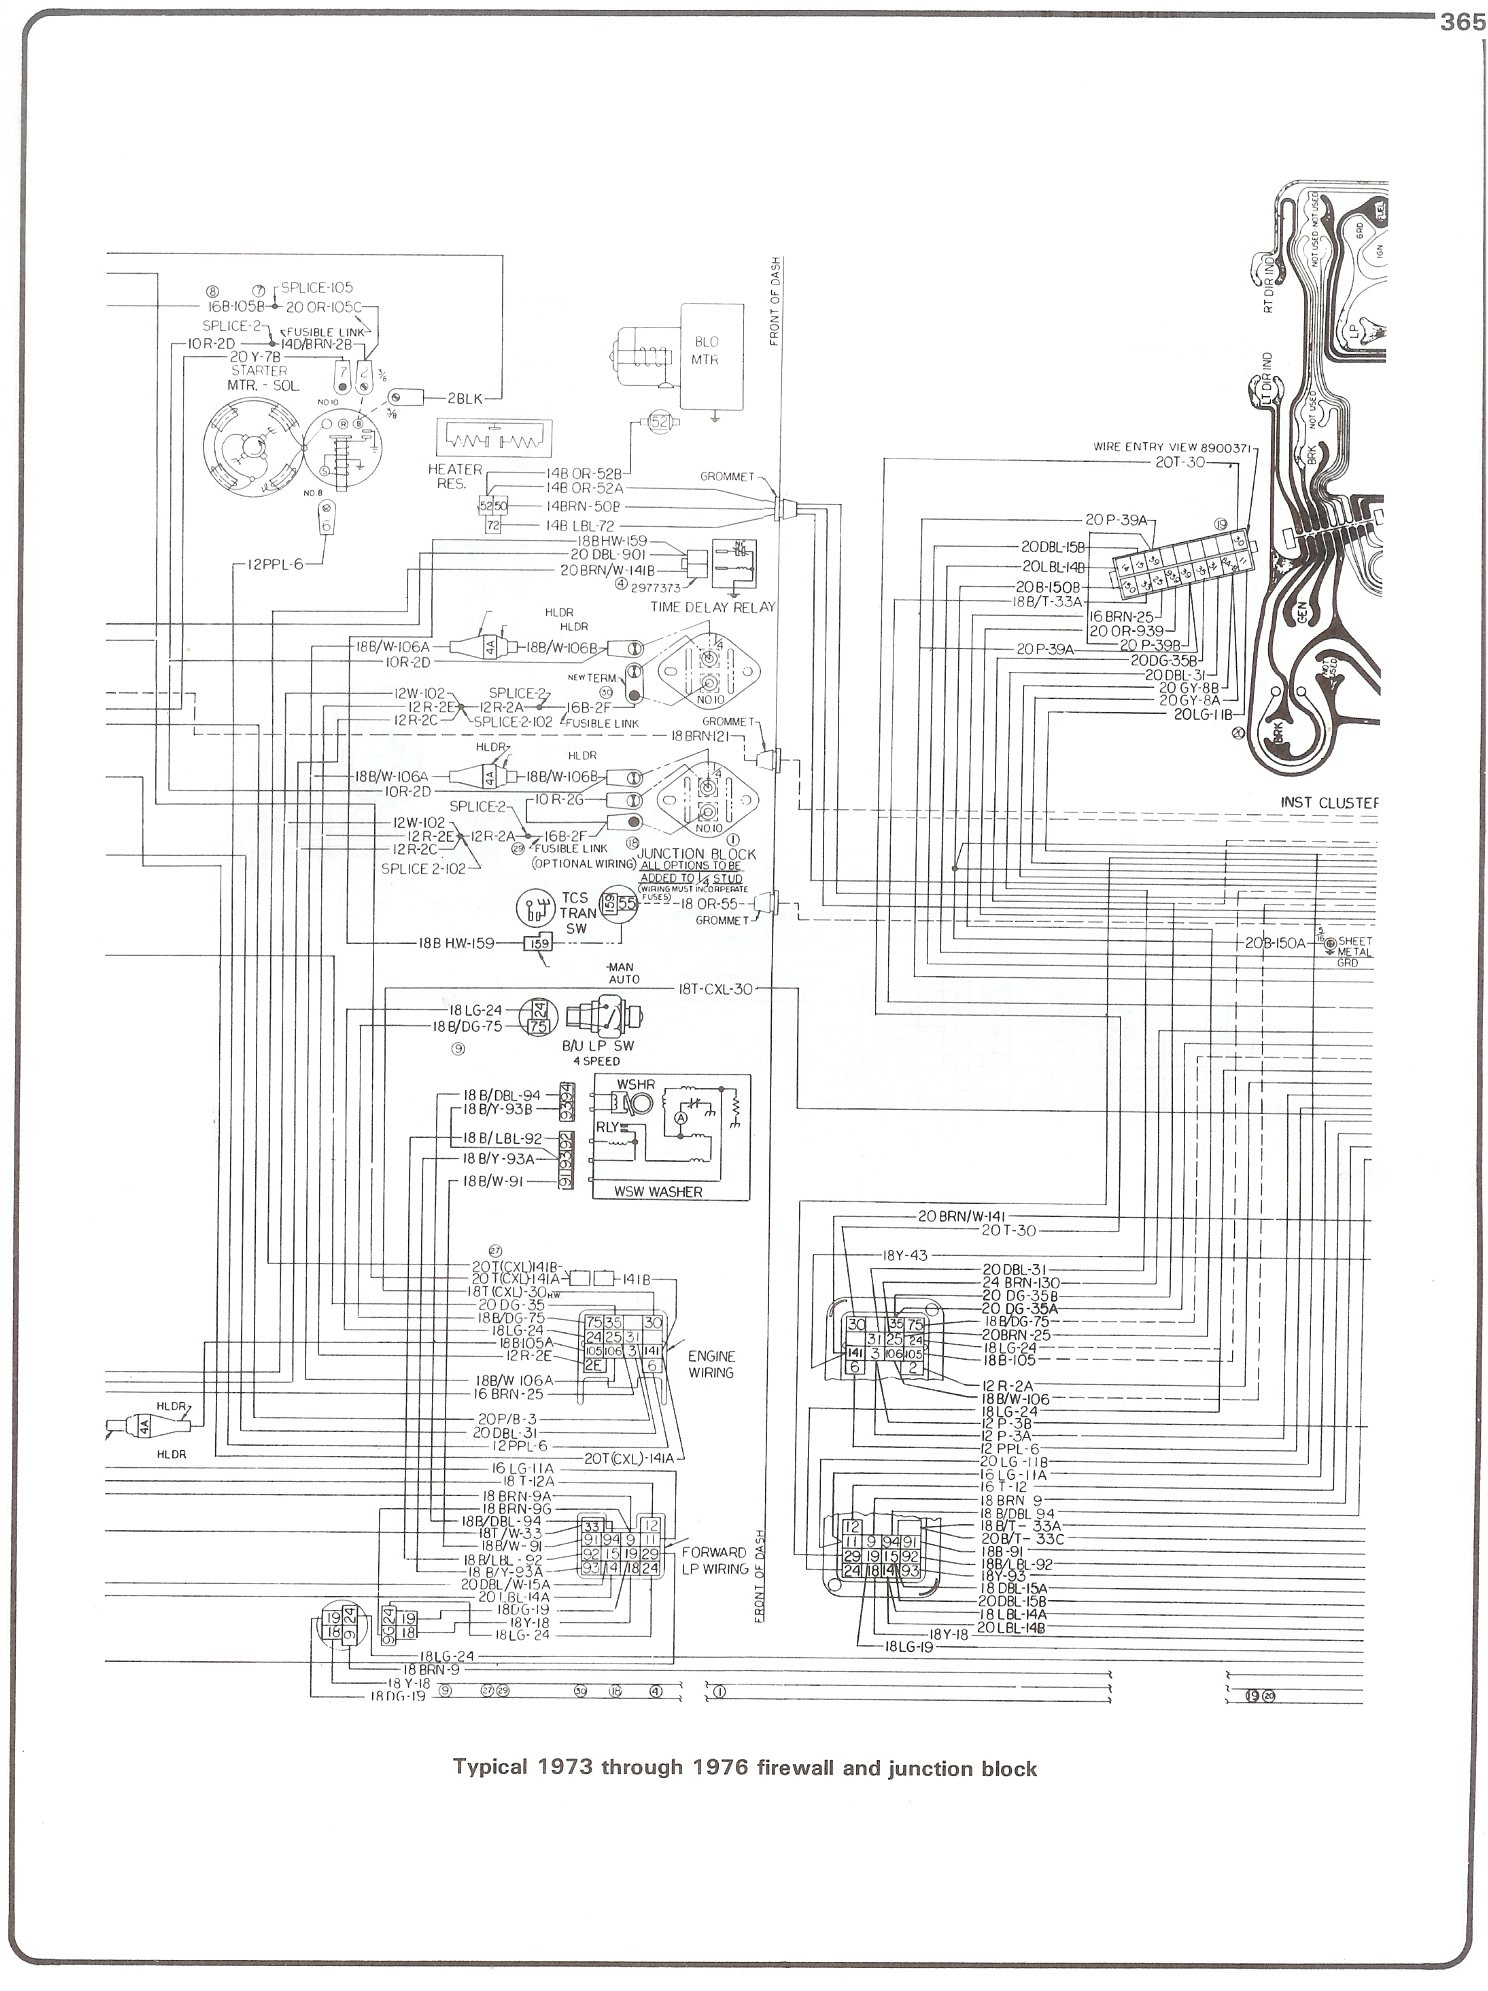 73 76_firewall_junct complete 73 87 wiring diagrams  at metegol.co